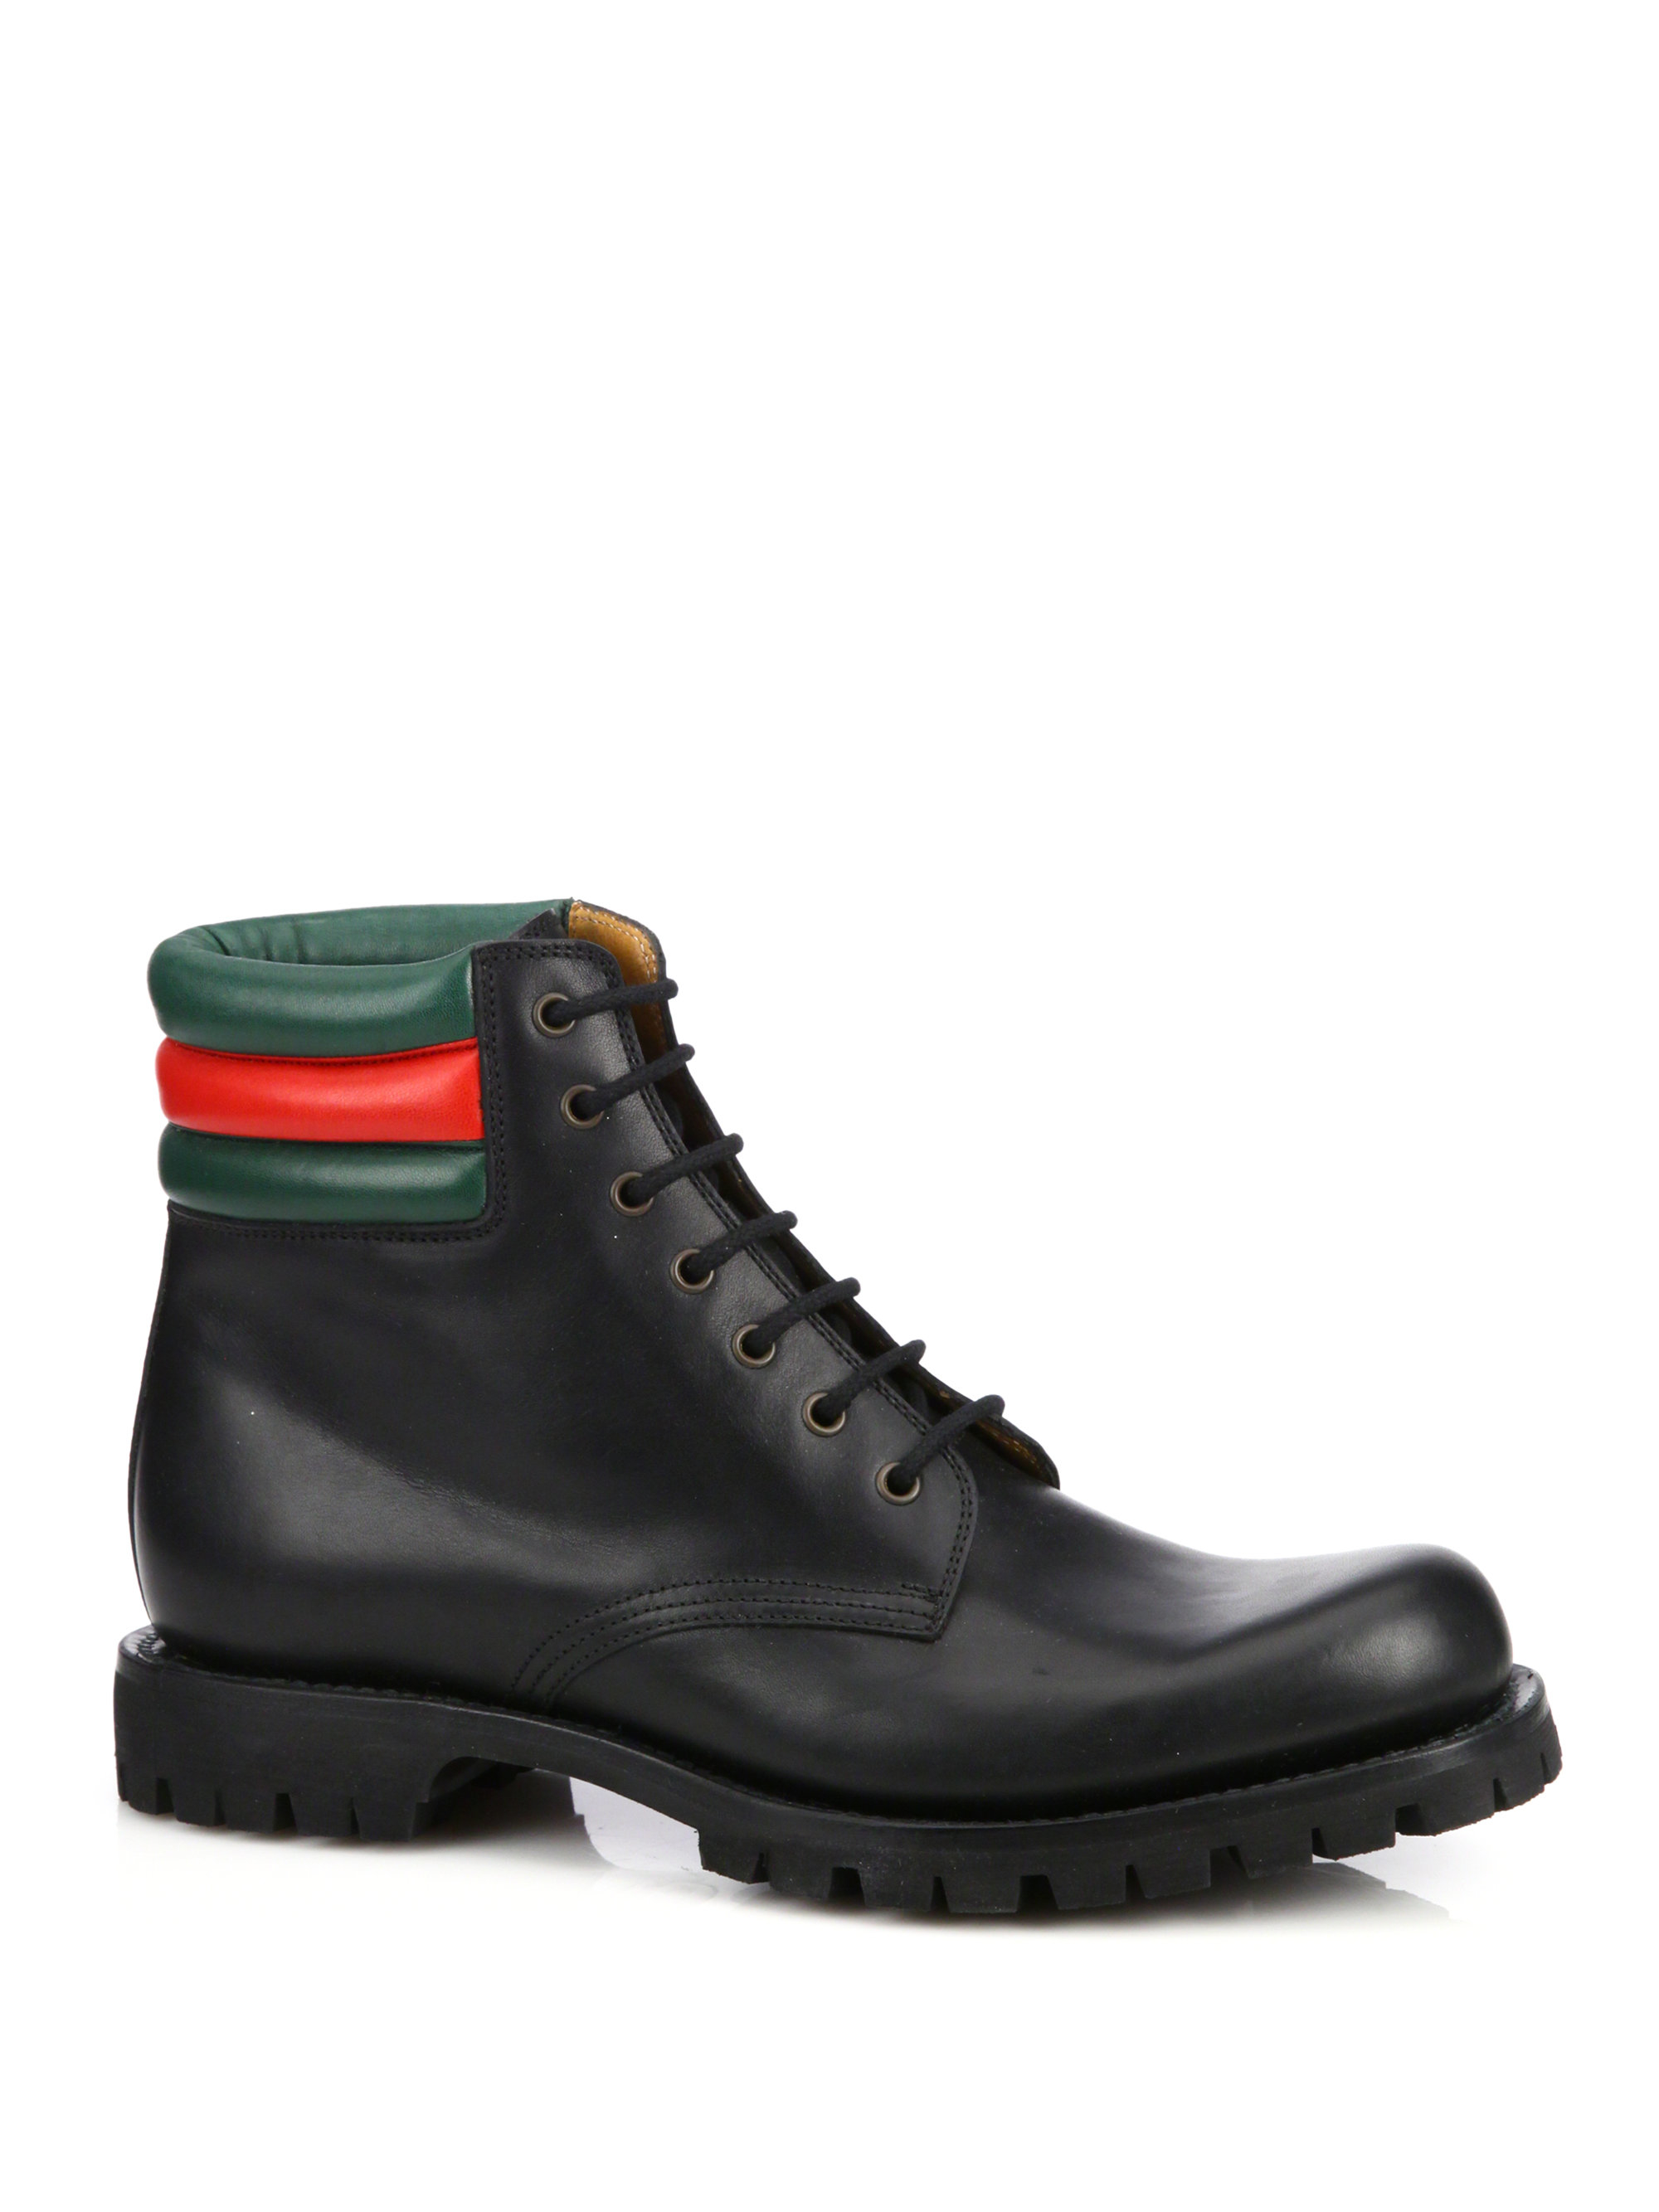 gucci marland leather laceup boots in black for men lyst